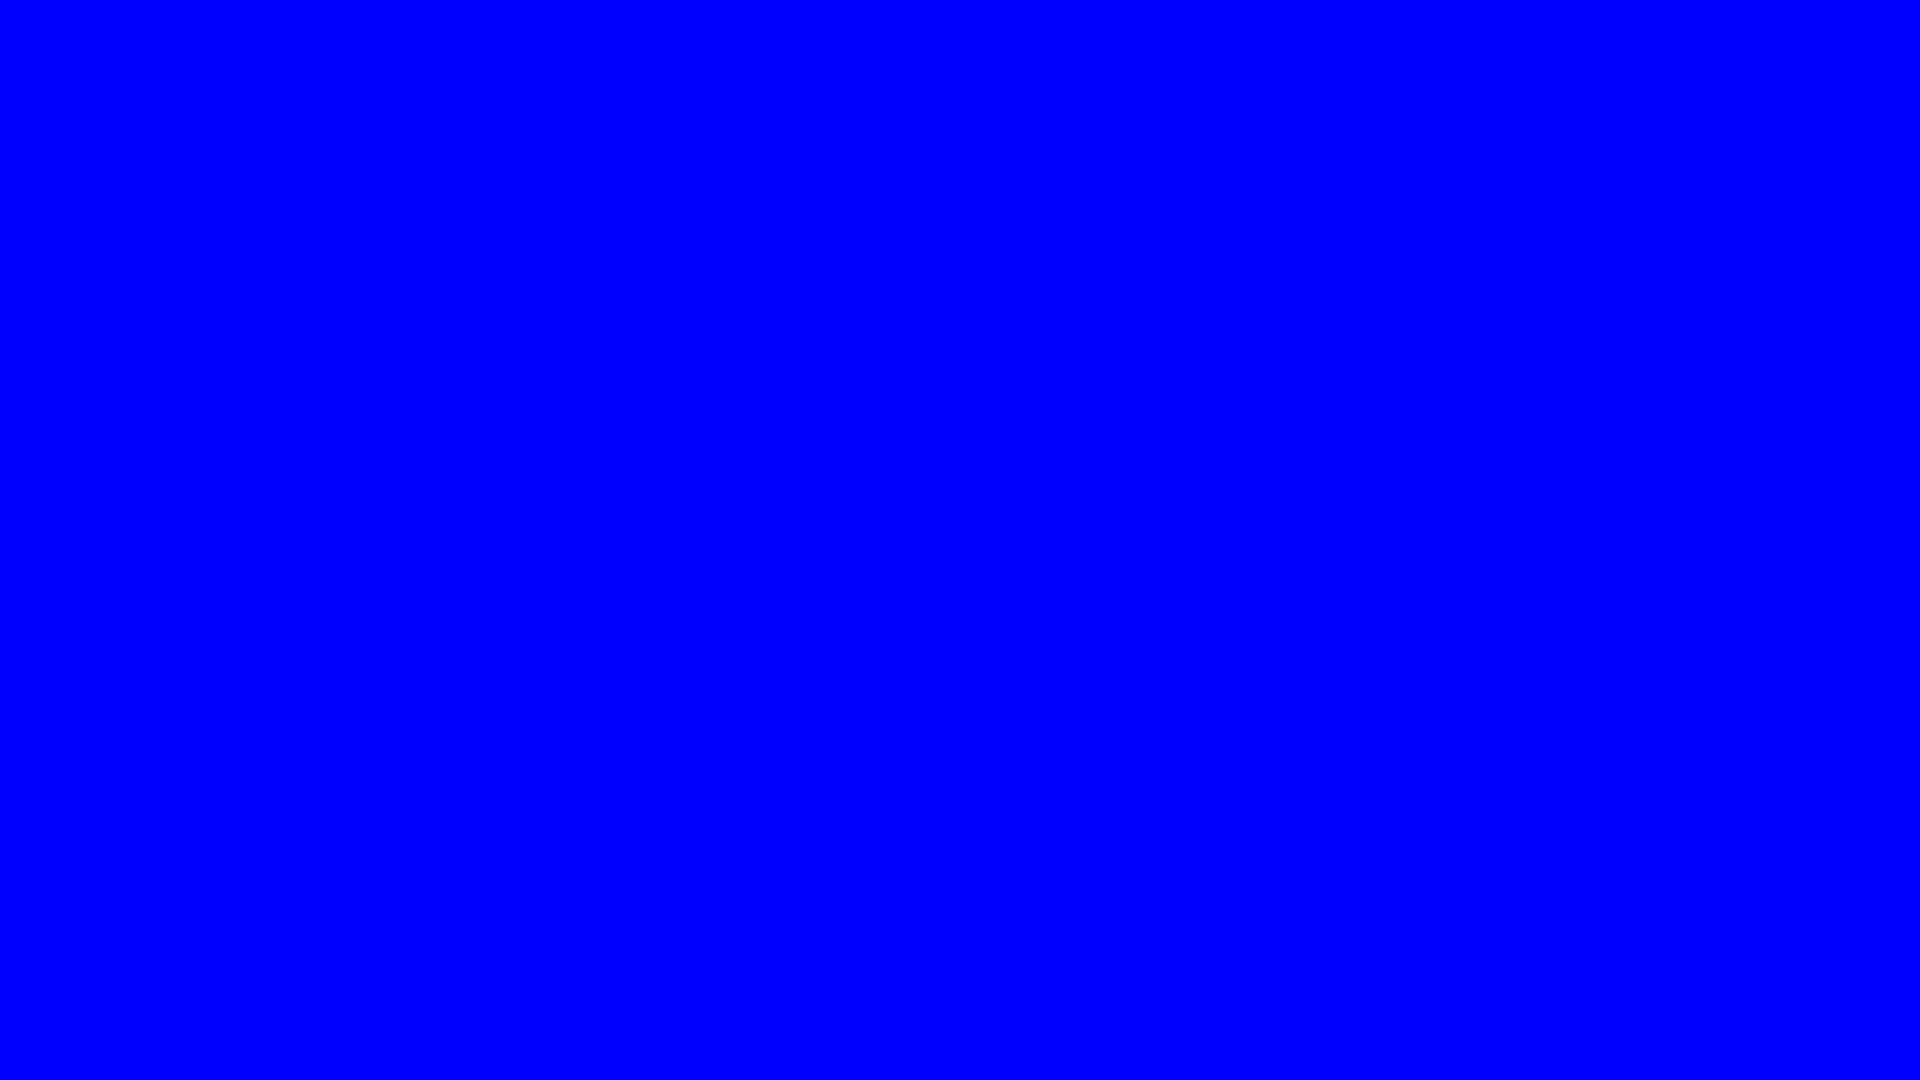 1920x1080 Blue Solid Color Background 1920x1080